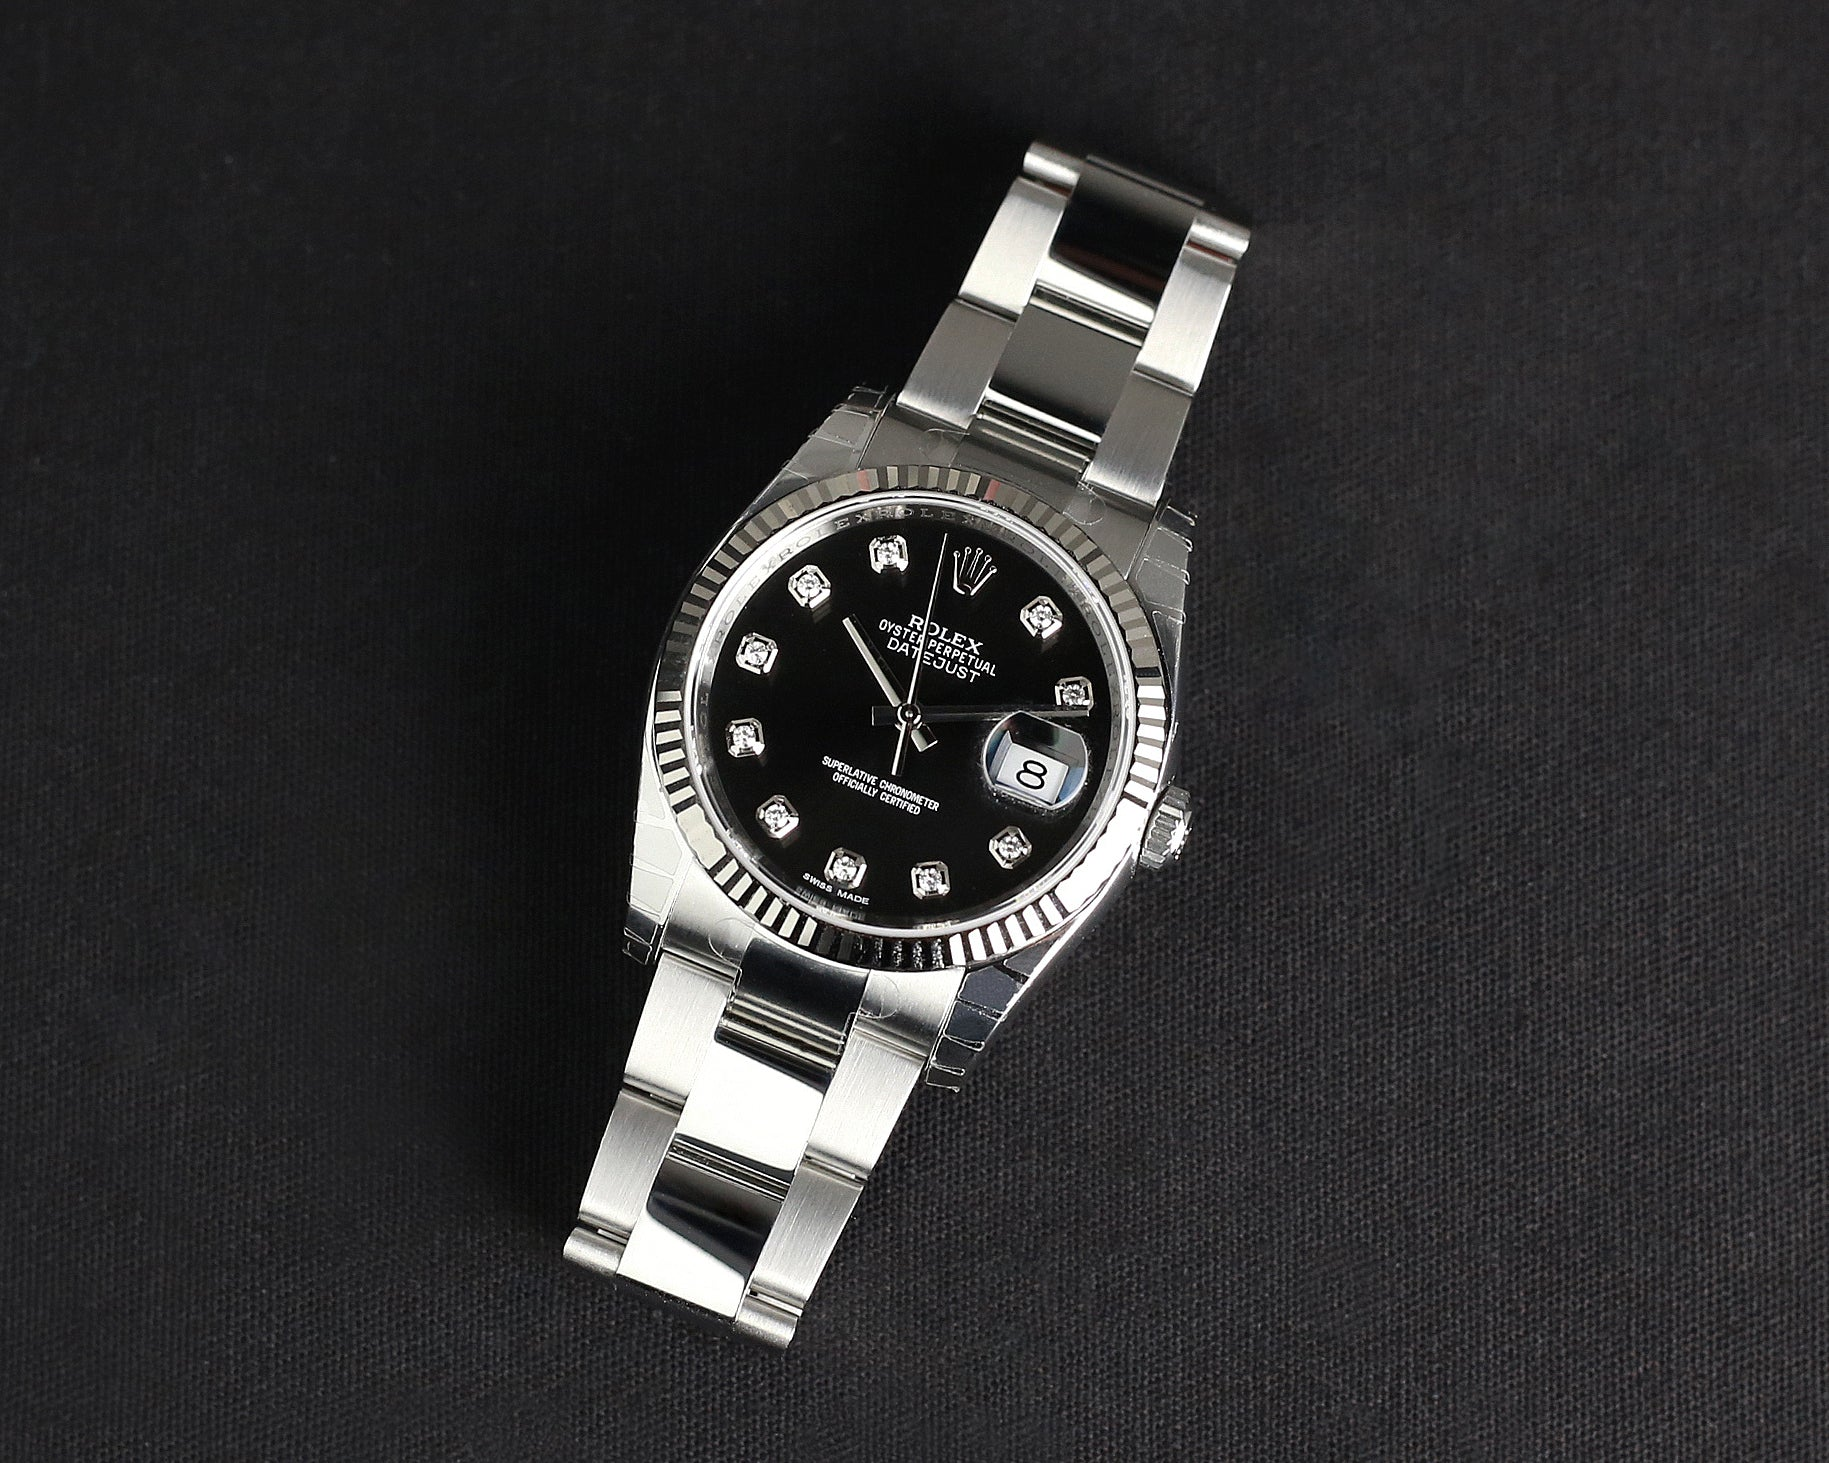 Rolex Datejust 36mm 116234 Black Dial with Diamonds (Oyster Bracelet)